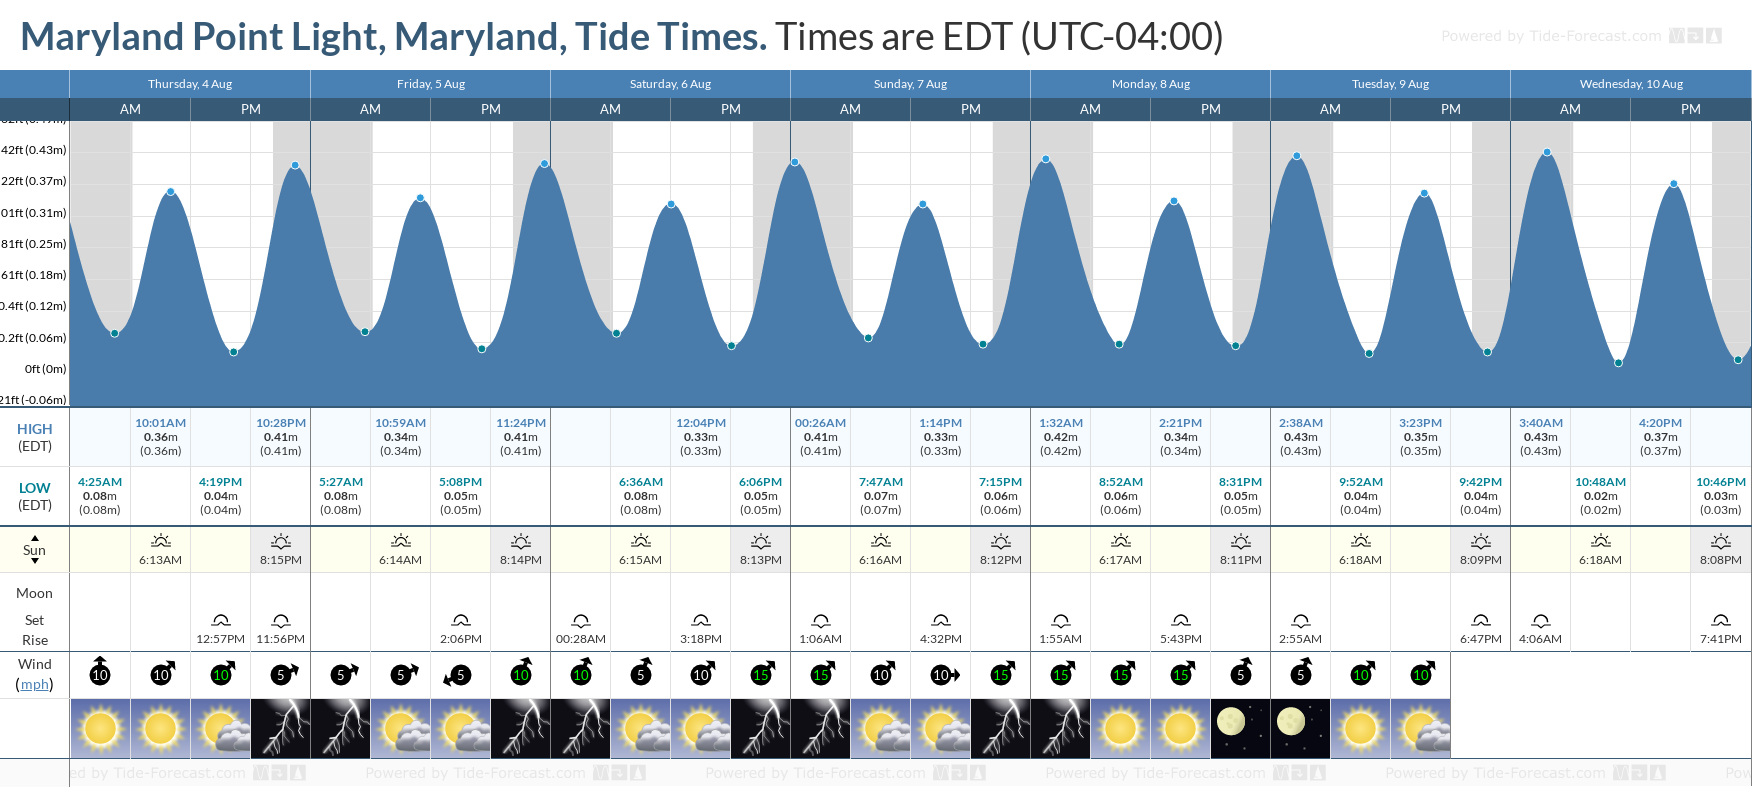 Maryland Point Light, Maryland Tide Chart including high and low tide tide times for the next 7 days